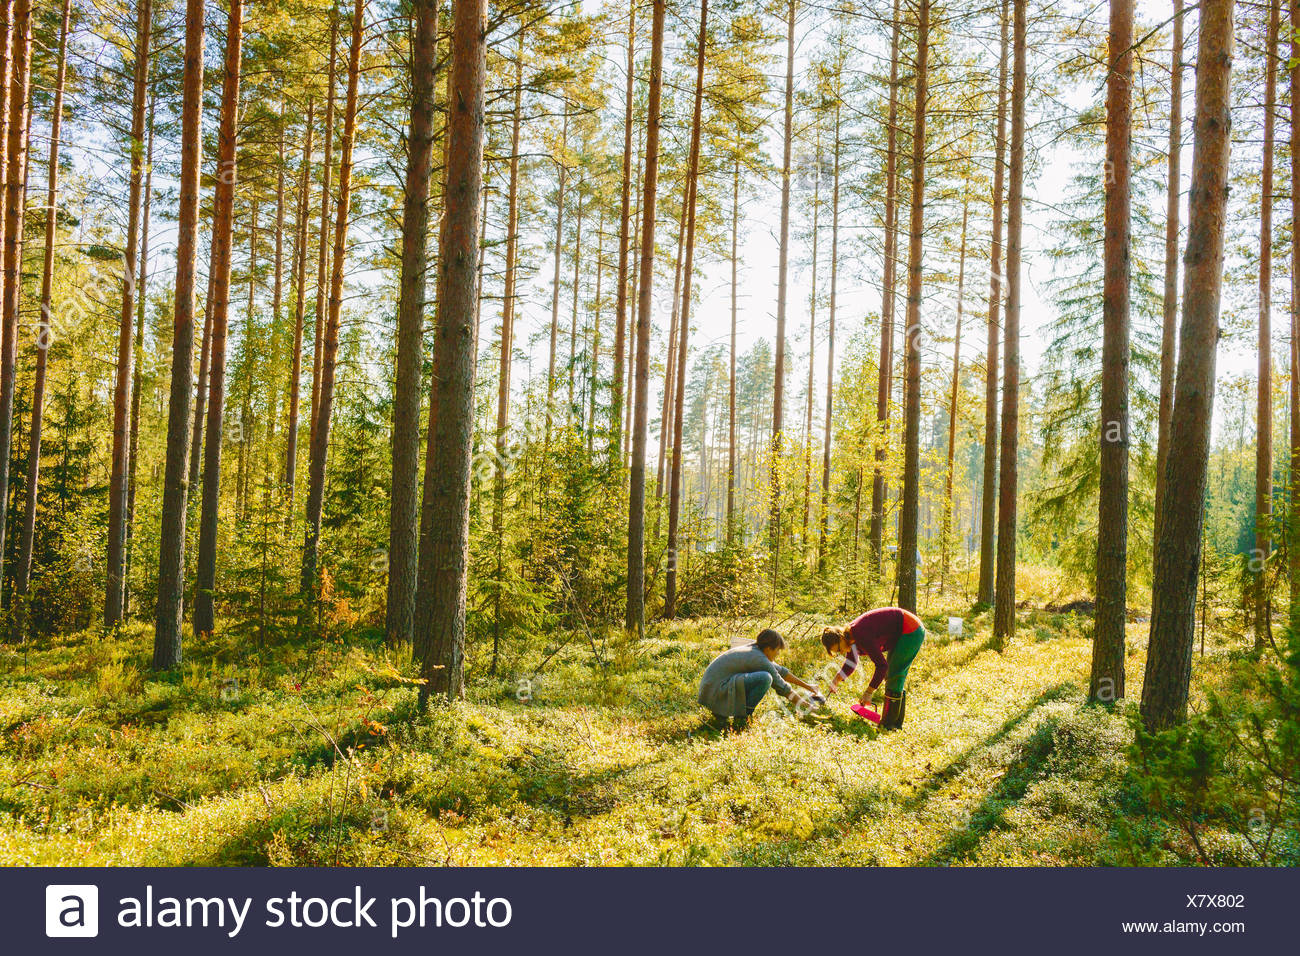 Finland, Etela-Savo, Huttula, Two women picking mushrooms in forest - Stock Image